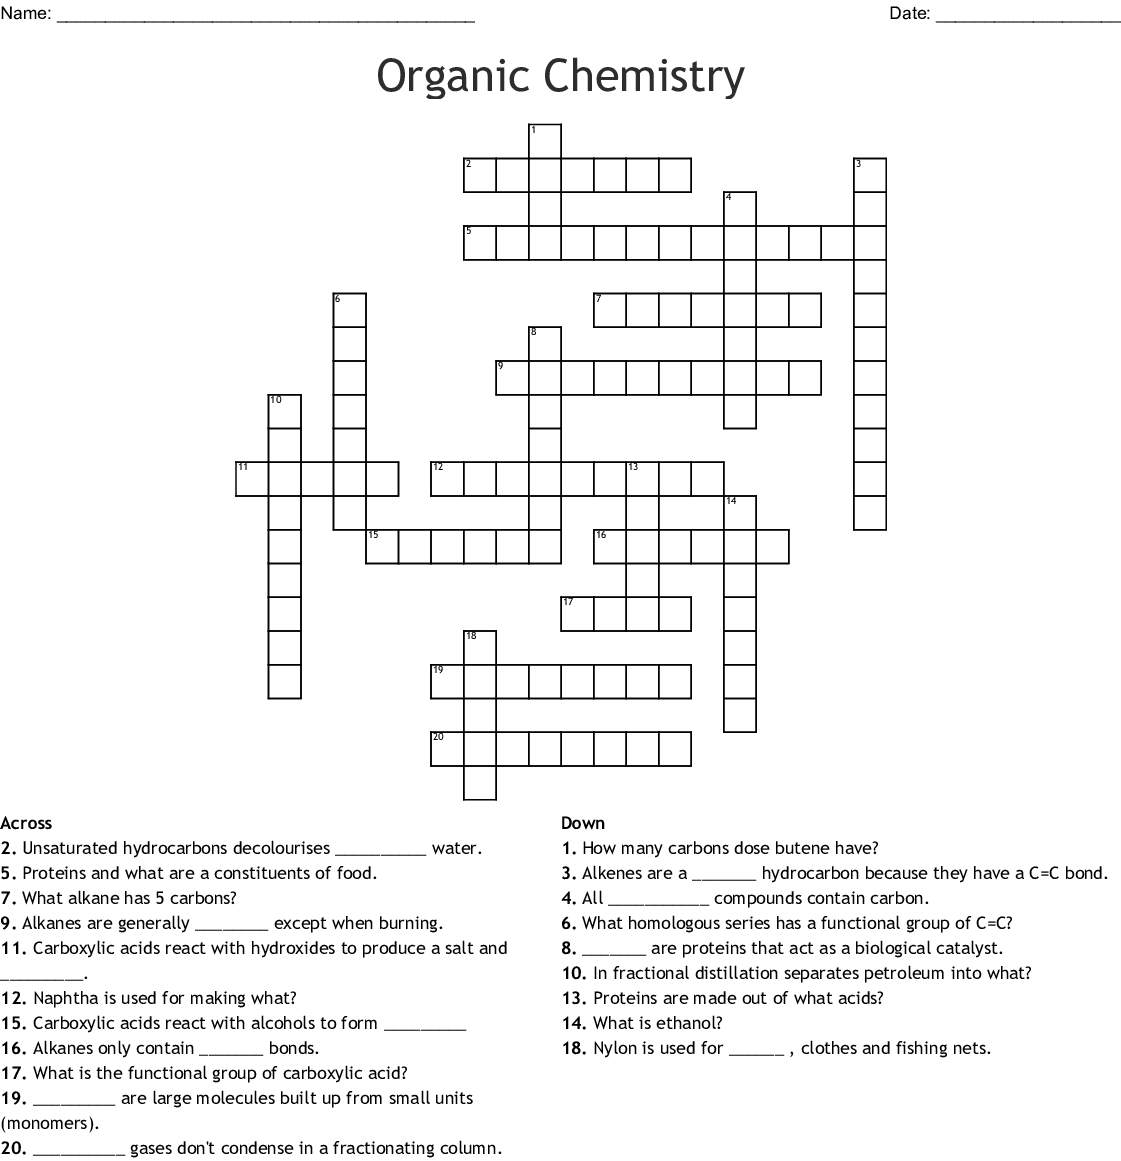 Organic Chemistry Crossword